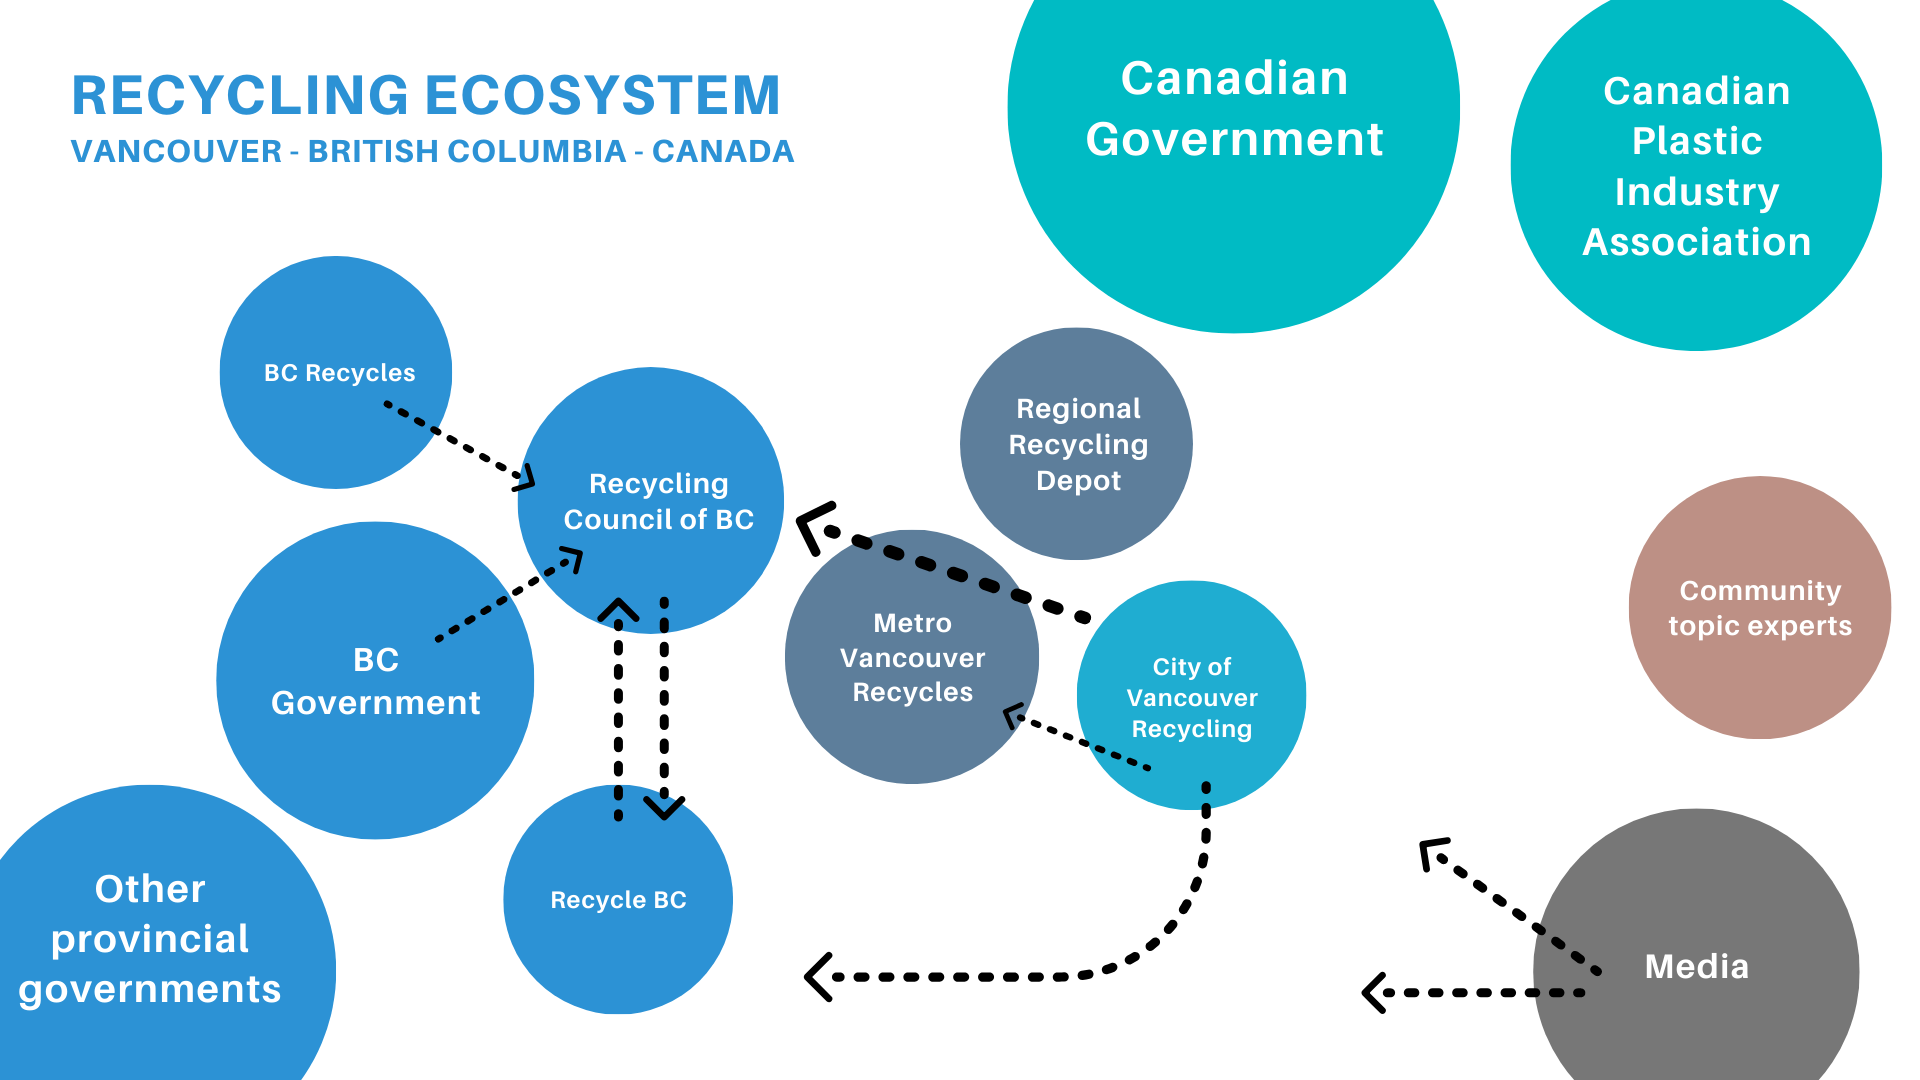 Recycling ecosystem map composed of different actors represented by circles with information flow arrows included.